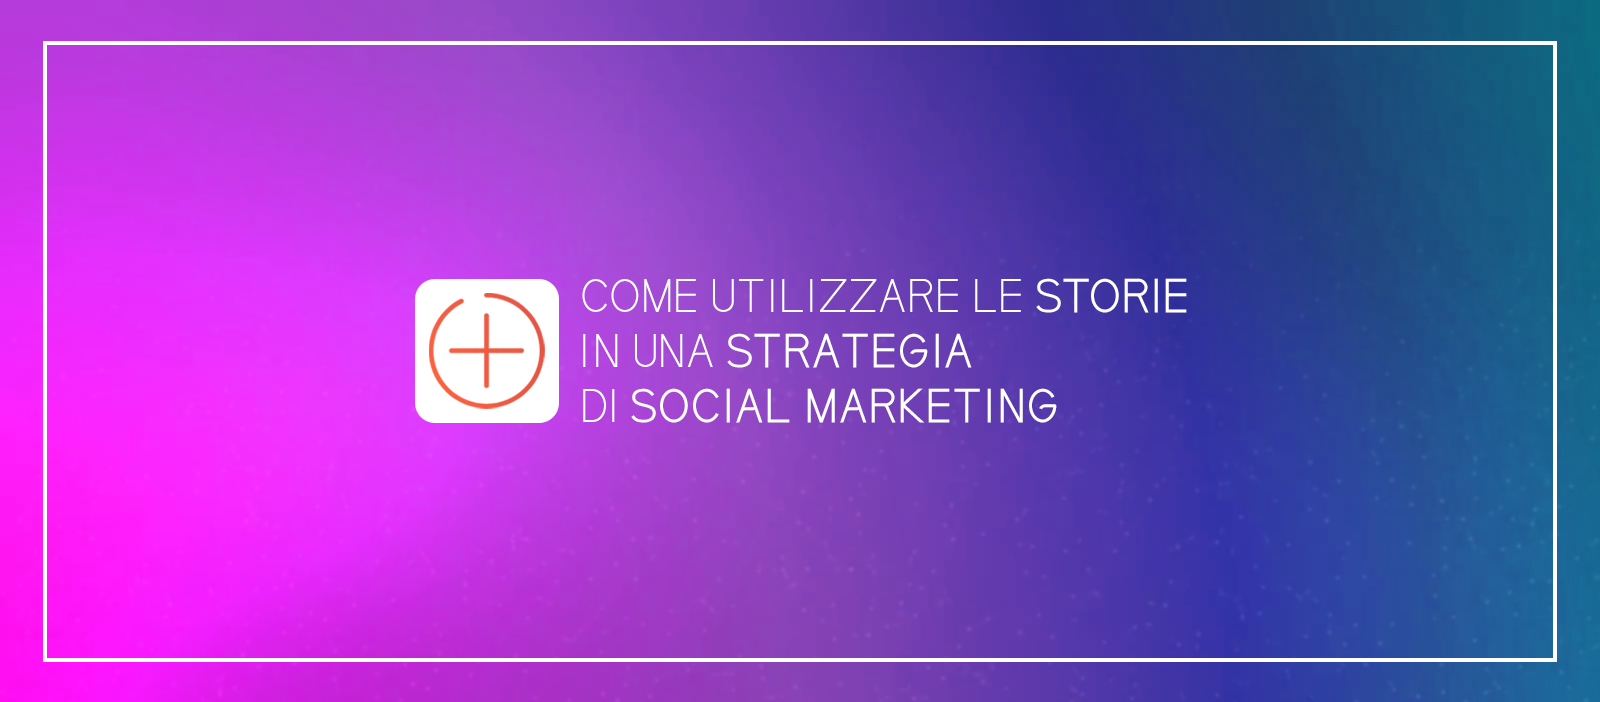 Come utilizzare le storie in una strategia di social marketing